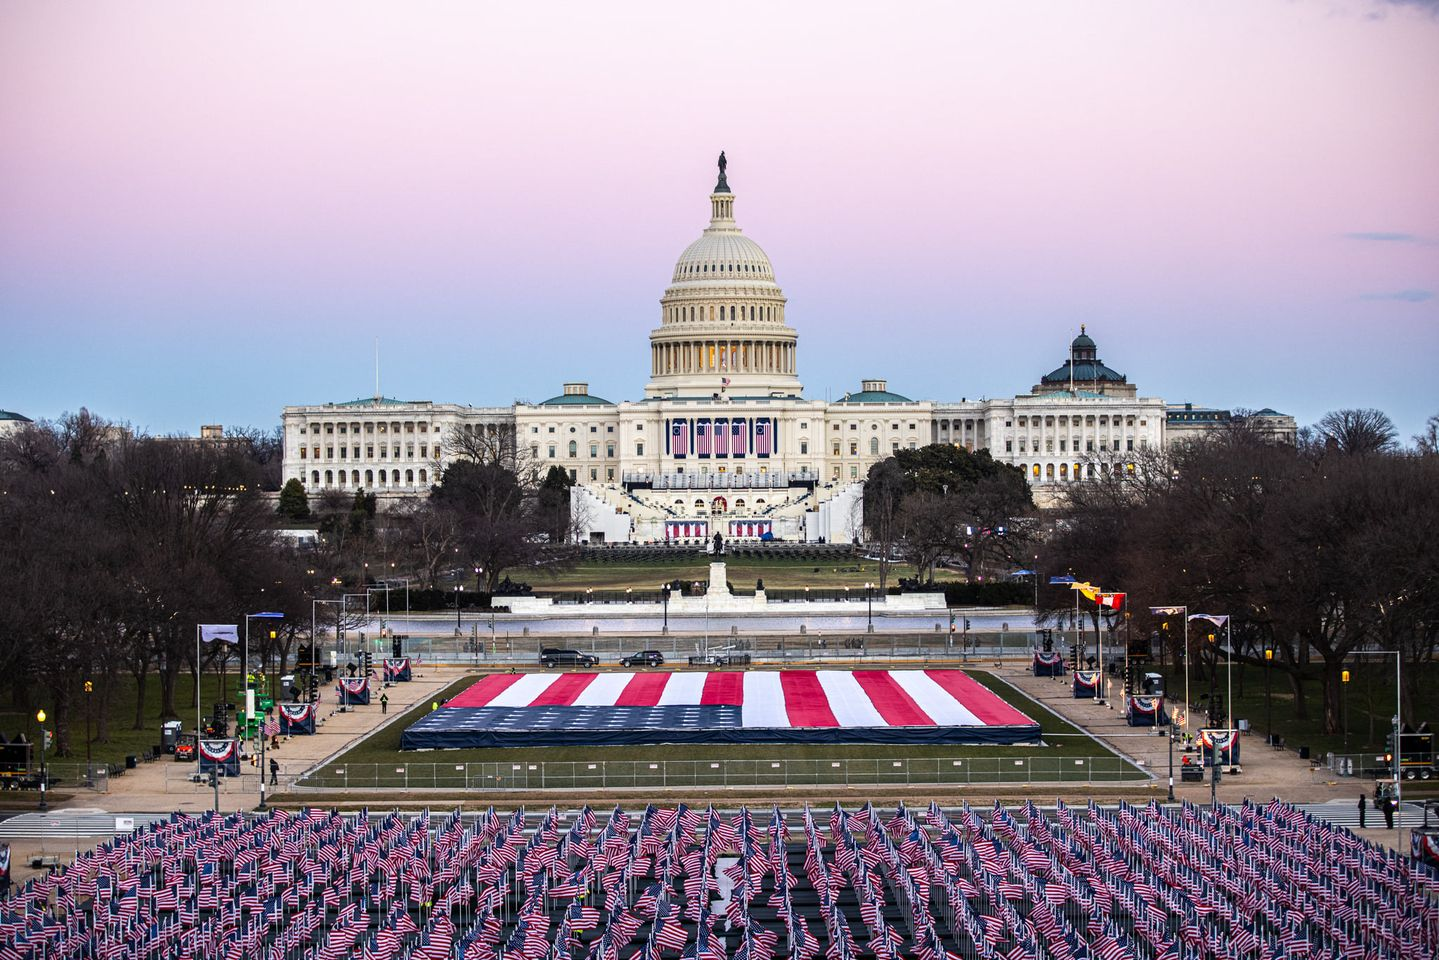 In lieu of the large crowd that would normally attend, more than 200,000 flags fly the National Mall for President Joe Biden's inauguration on Wednesday, Jan. 20, 2021. (Source: JoeBiden.com)